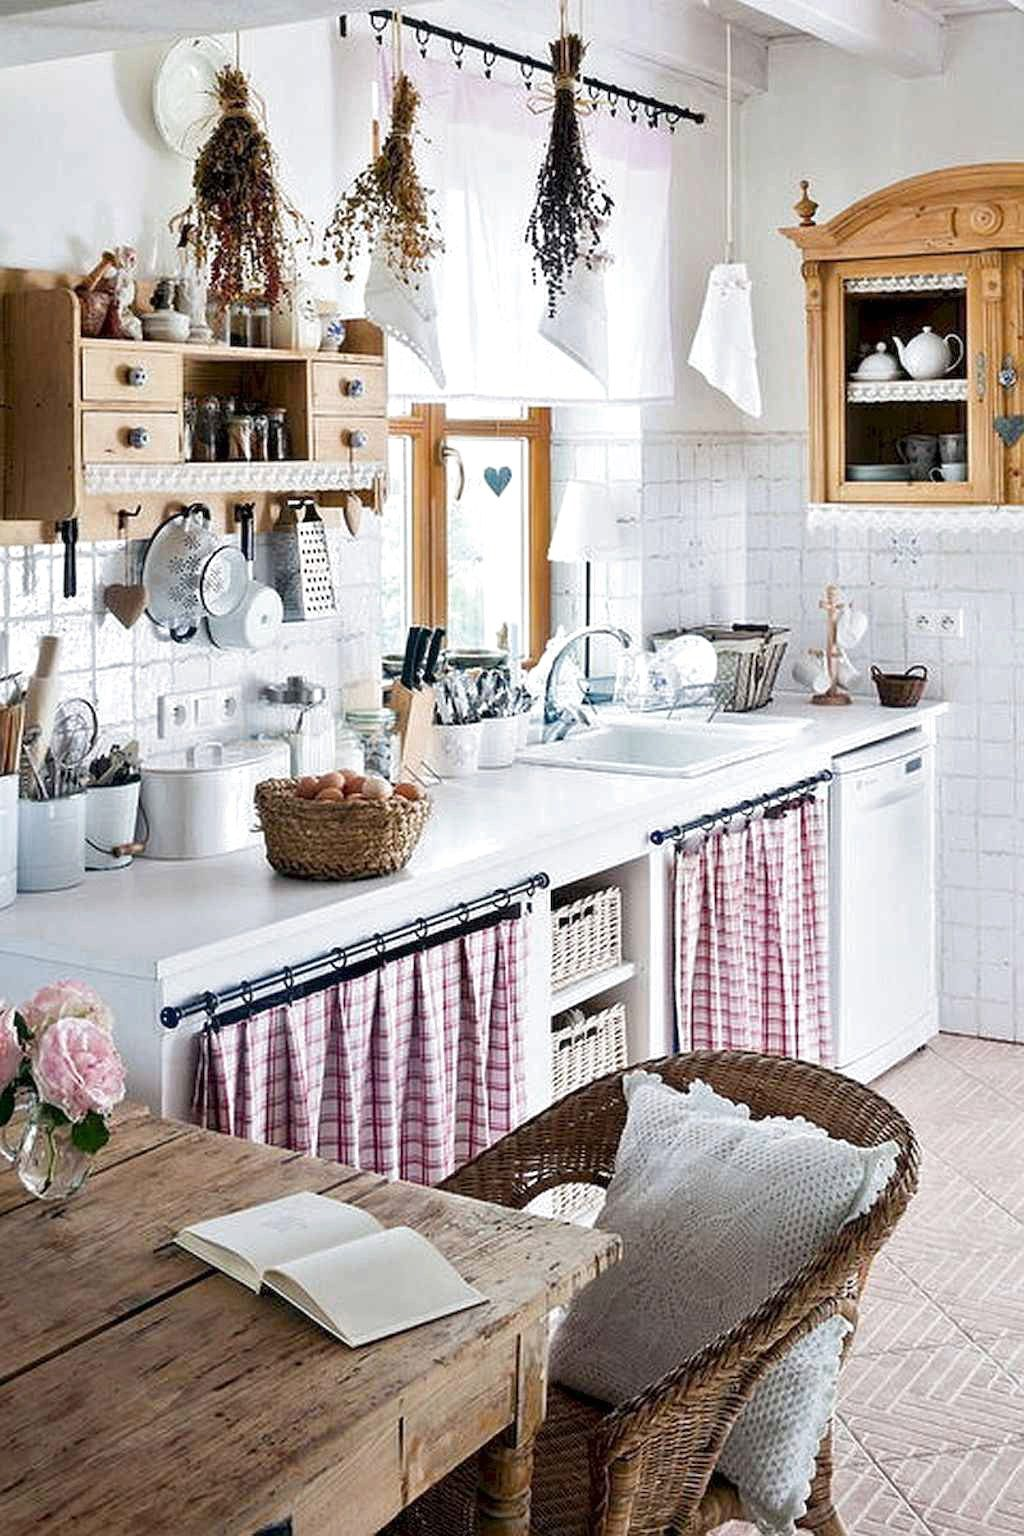 50 Best Small Kitchen Remodel Designs For Smart Space Management